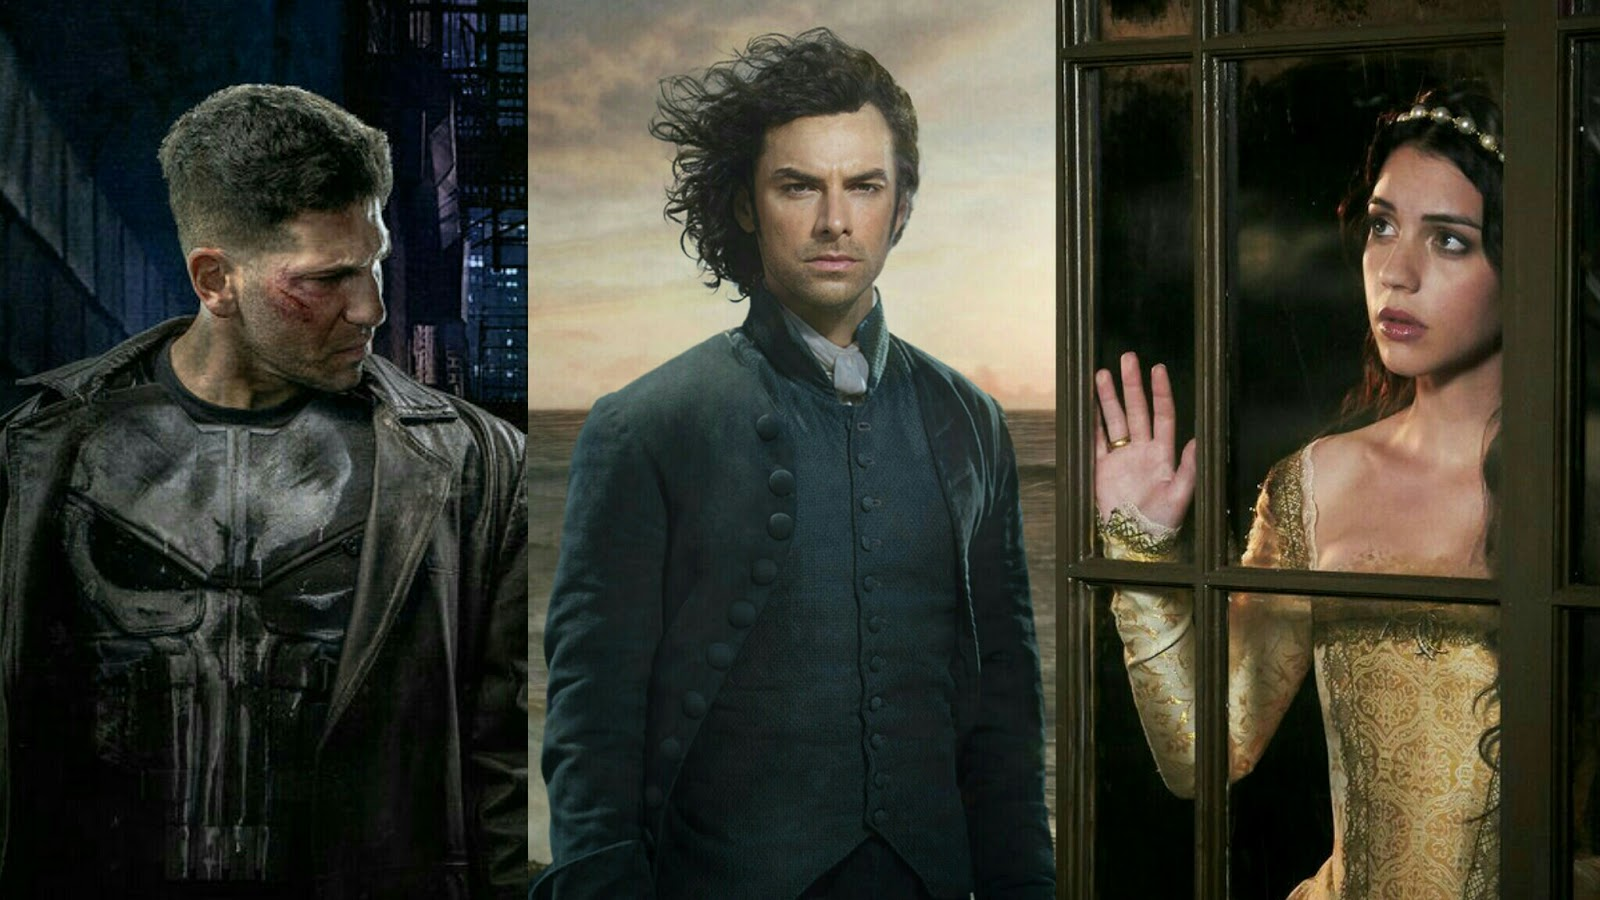 The Punisher, Poldark, Reign - Eclectic Pop's Best of 2016 TV